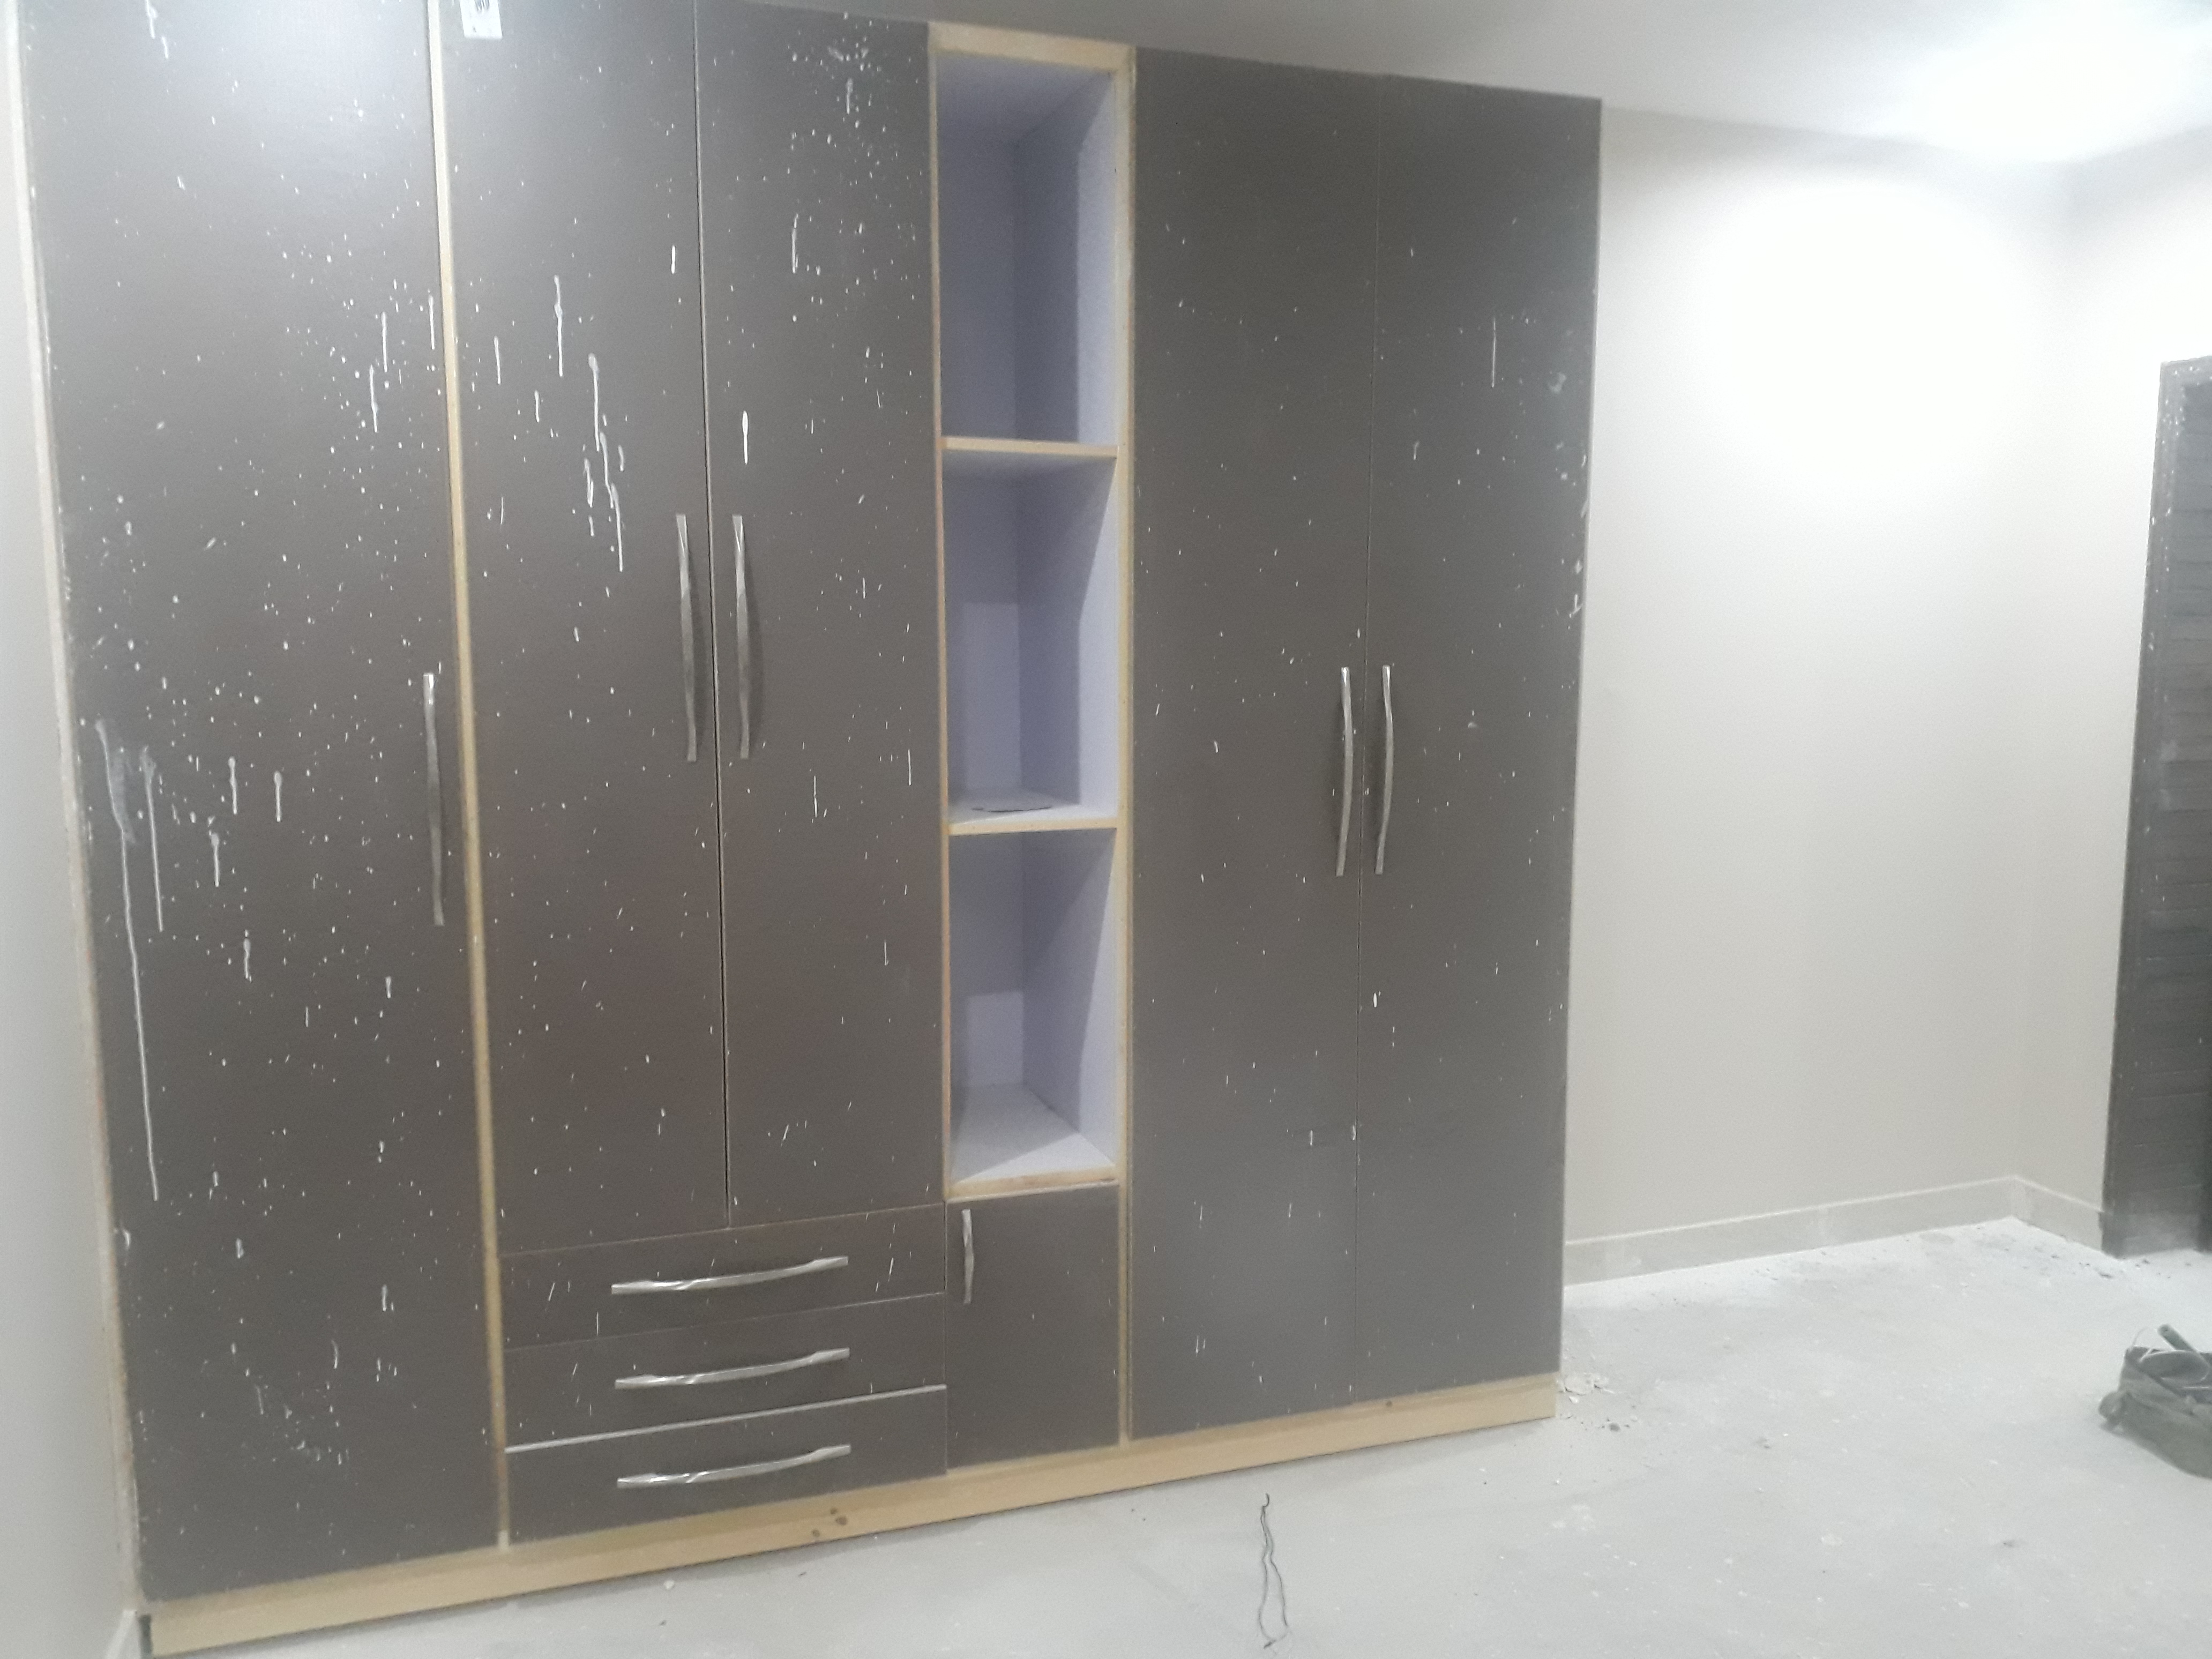 House for rent at arbab town